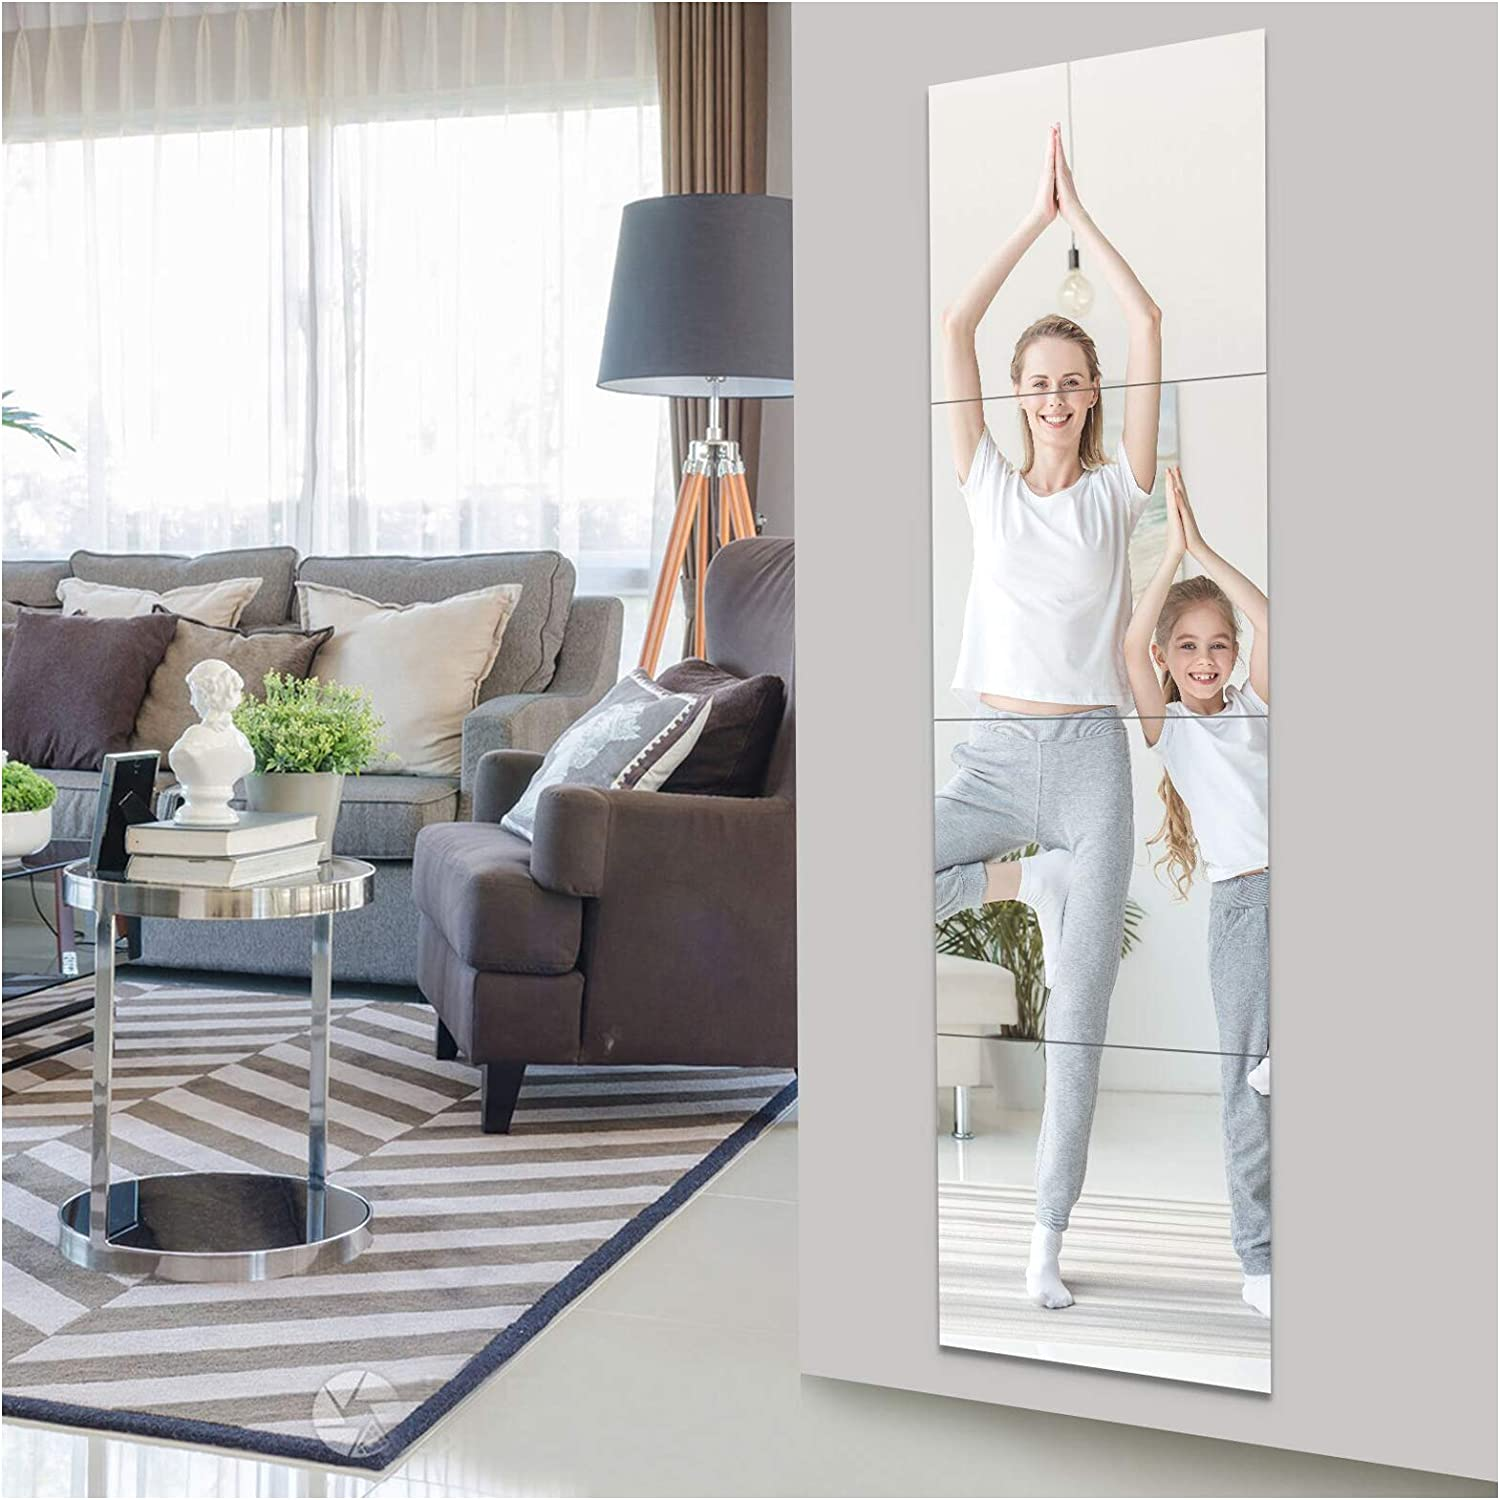 EVENLIVE Full Length Mirror Pieces Tiles-14 Frameless Discount mail order Inch×4 67% OFF of fixed price